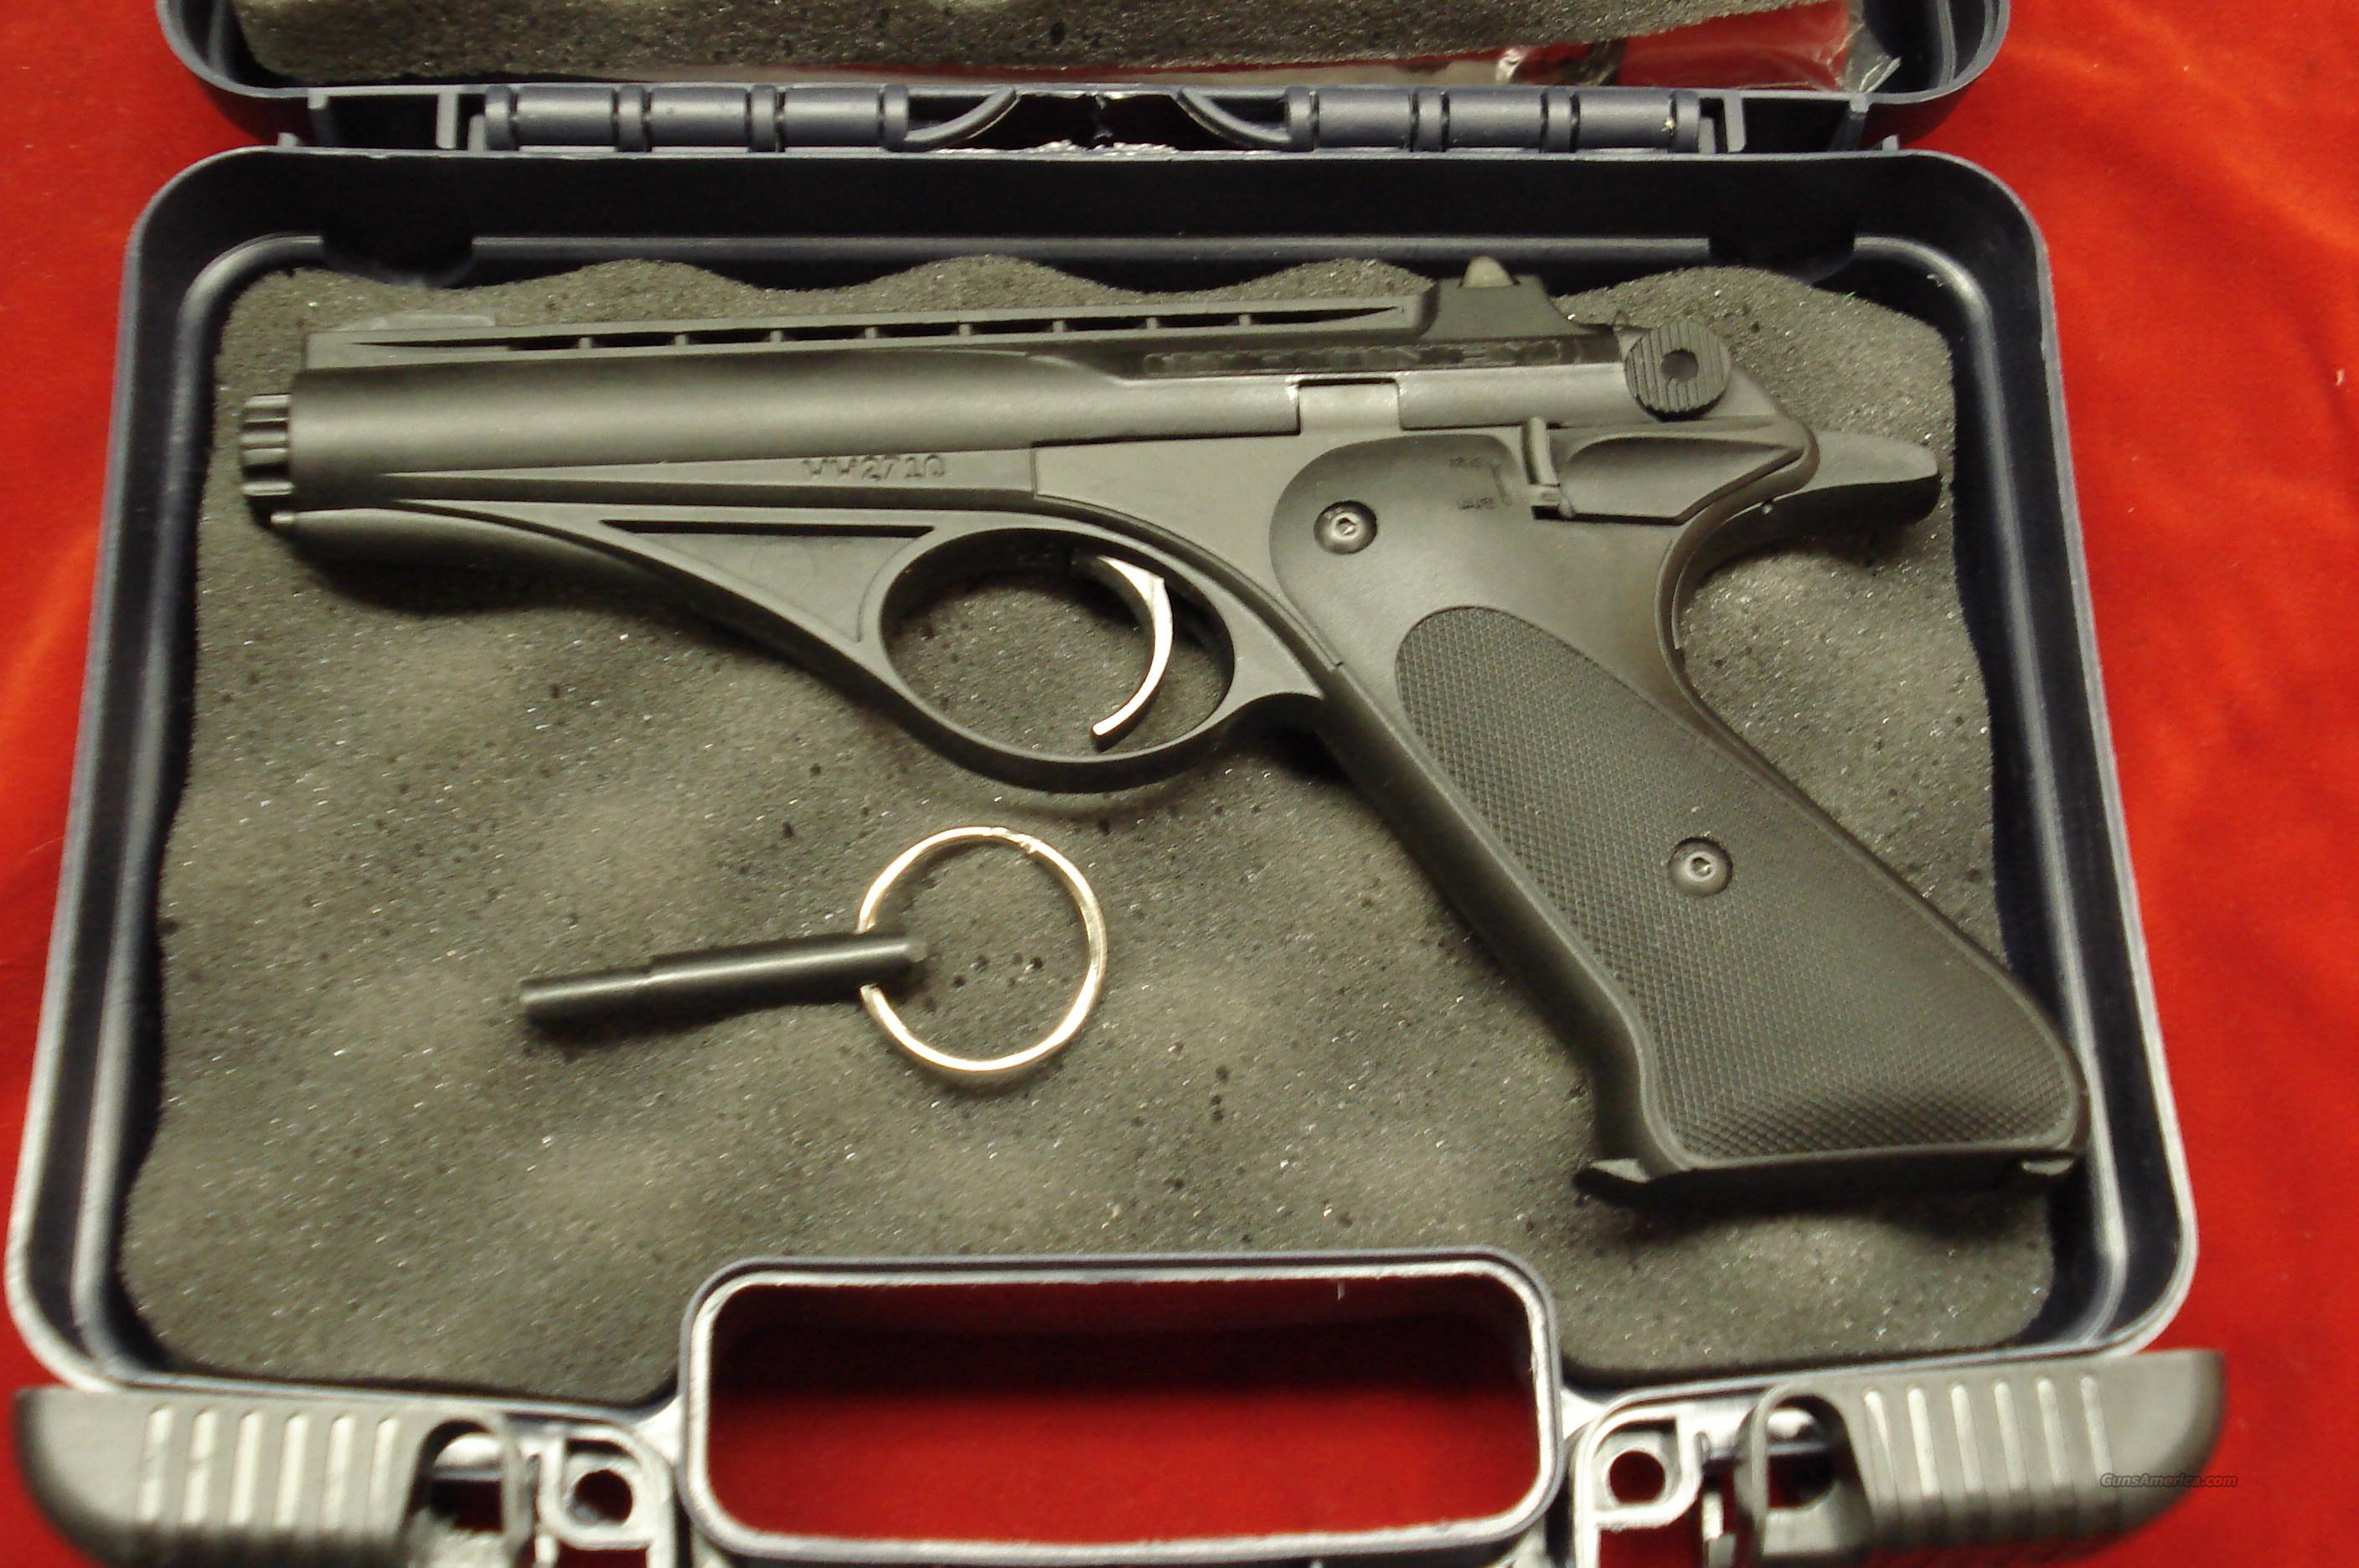 OLYMPIC ARMS WHITNEY WOLVERINE 22CAL. NEW  Guns > Pistols > Whitney Arms Pistols